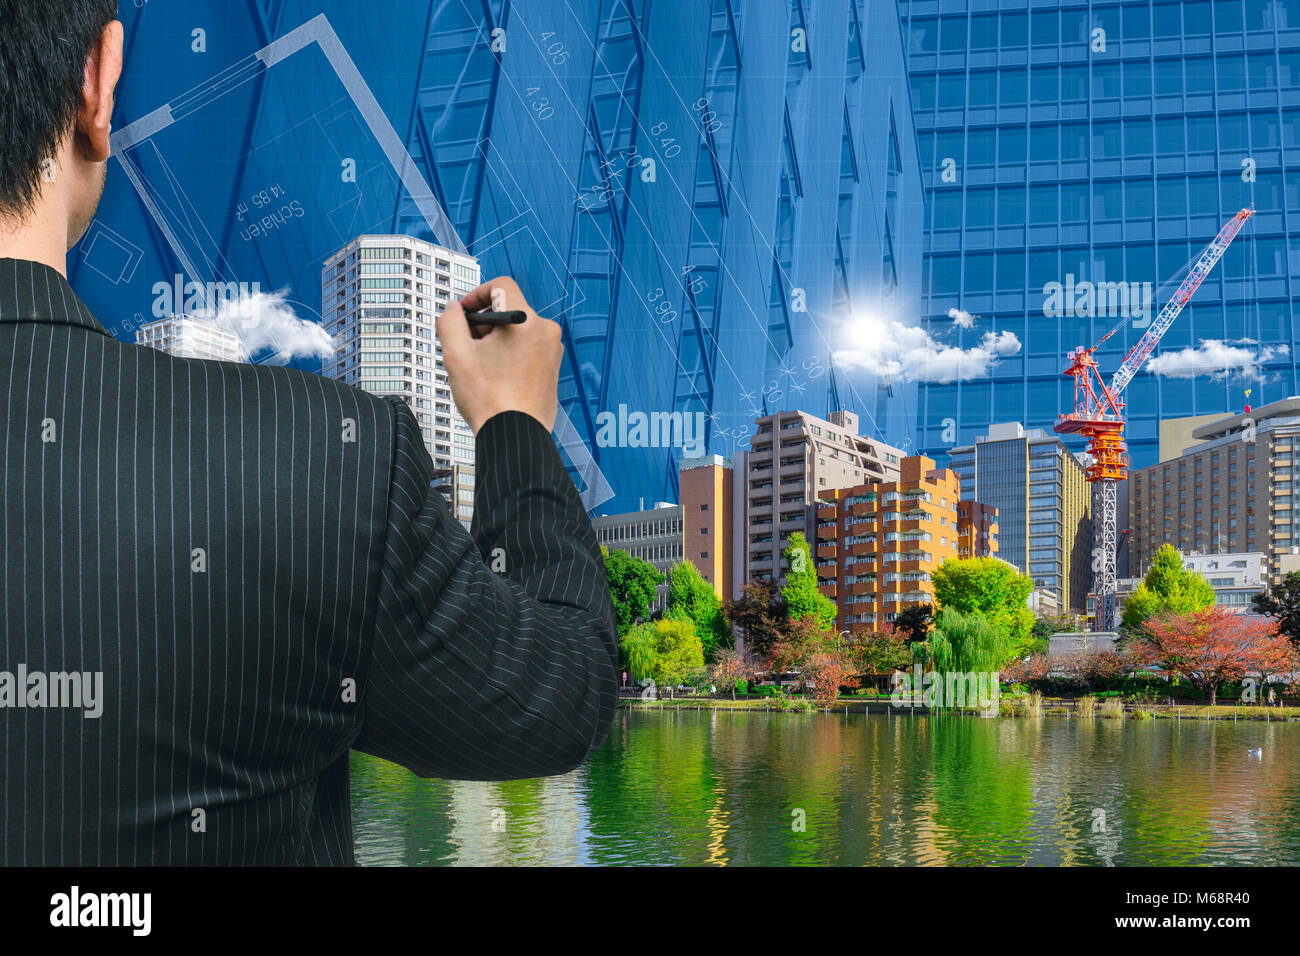 Architecture Drawing Eco City Green Environment  Park building new metro concept. - Stock Image